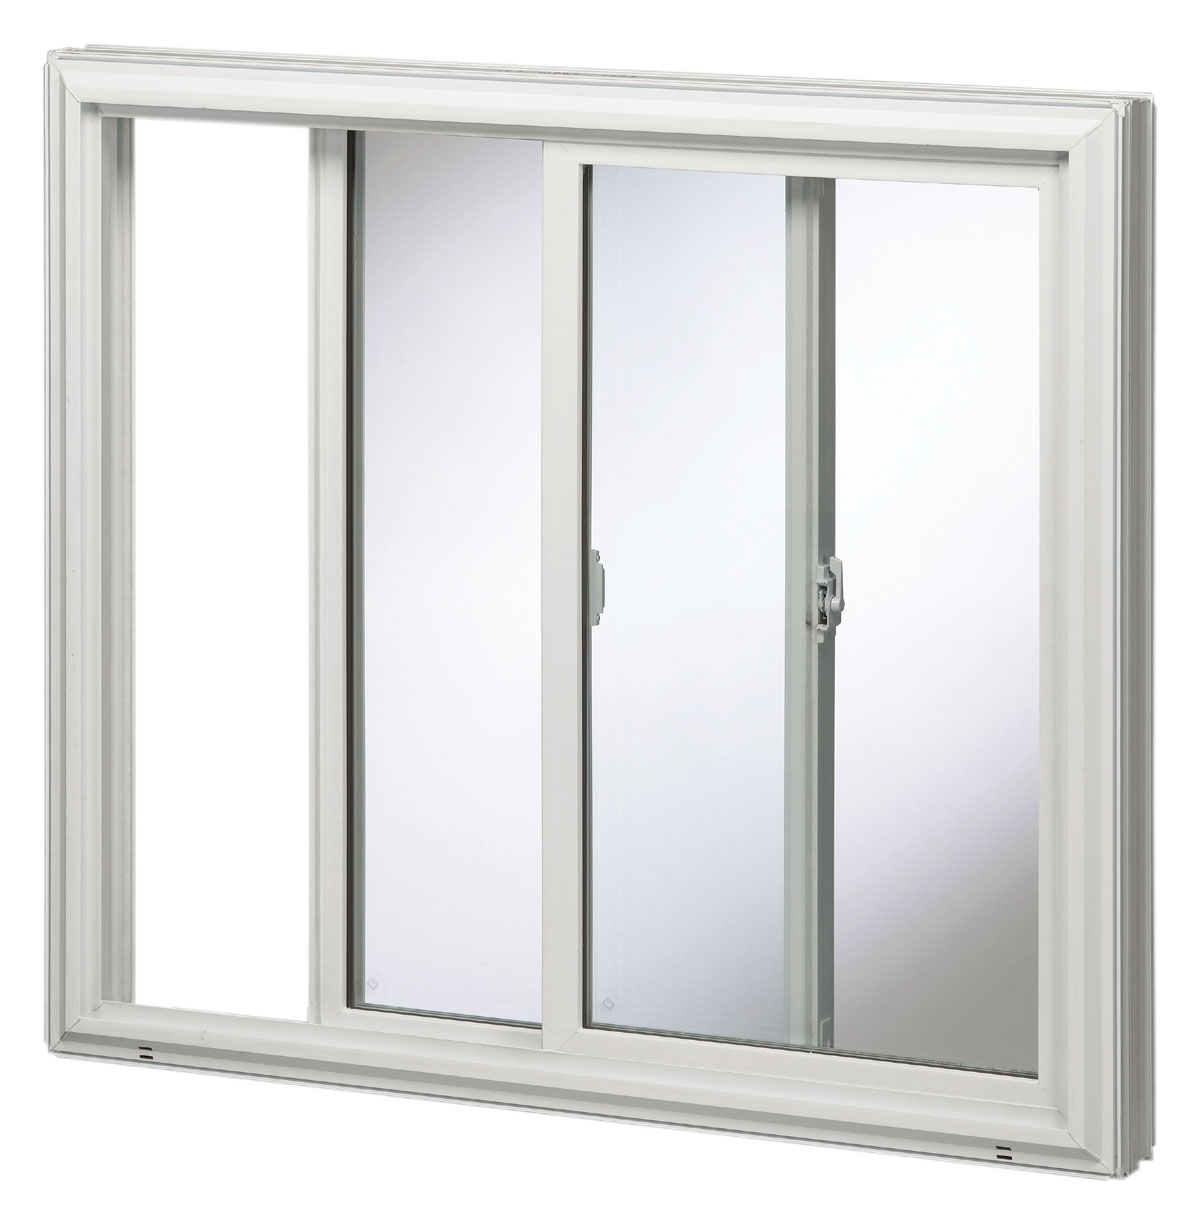 Goldenvinyl 174 5000 Series Double Slider Window Golden Windows